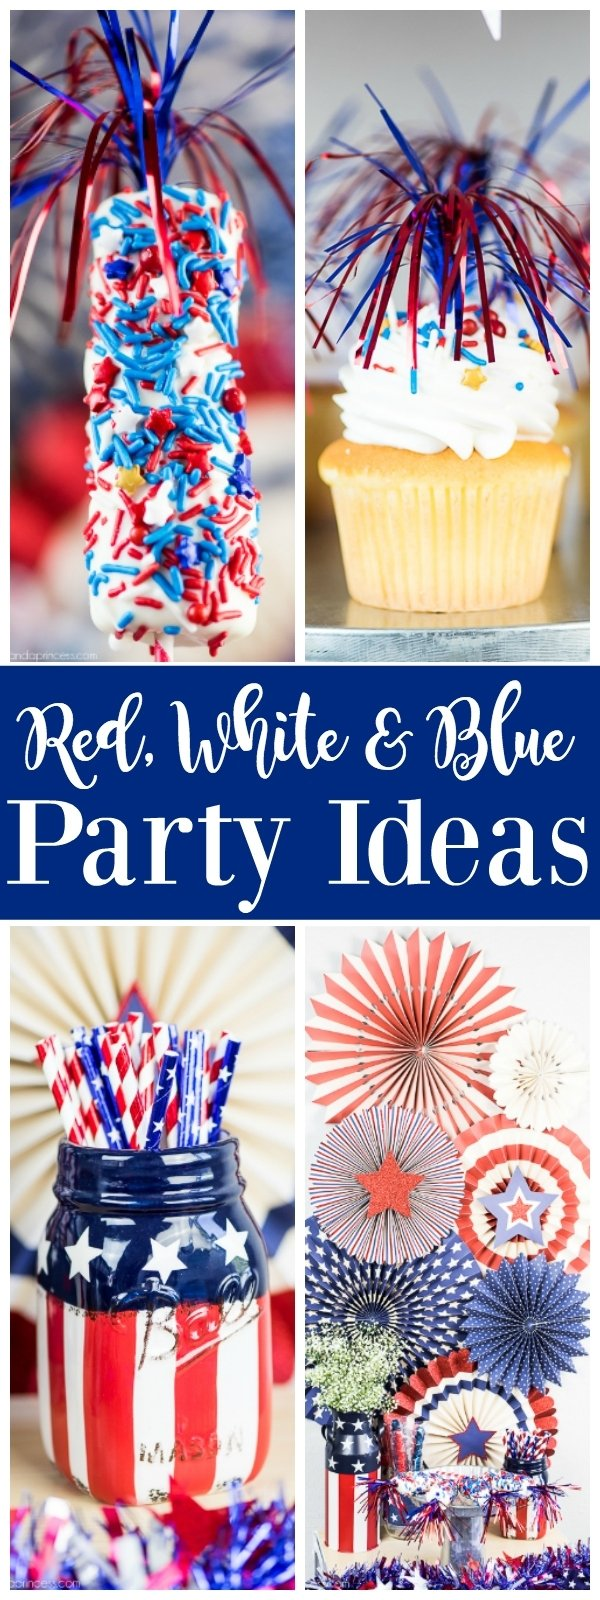 10 Beautiful Red White And Blue Party Ideas red white blue party ideas 2020